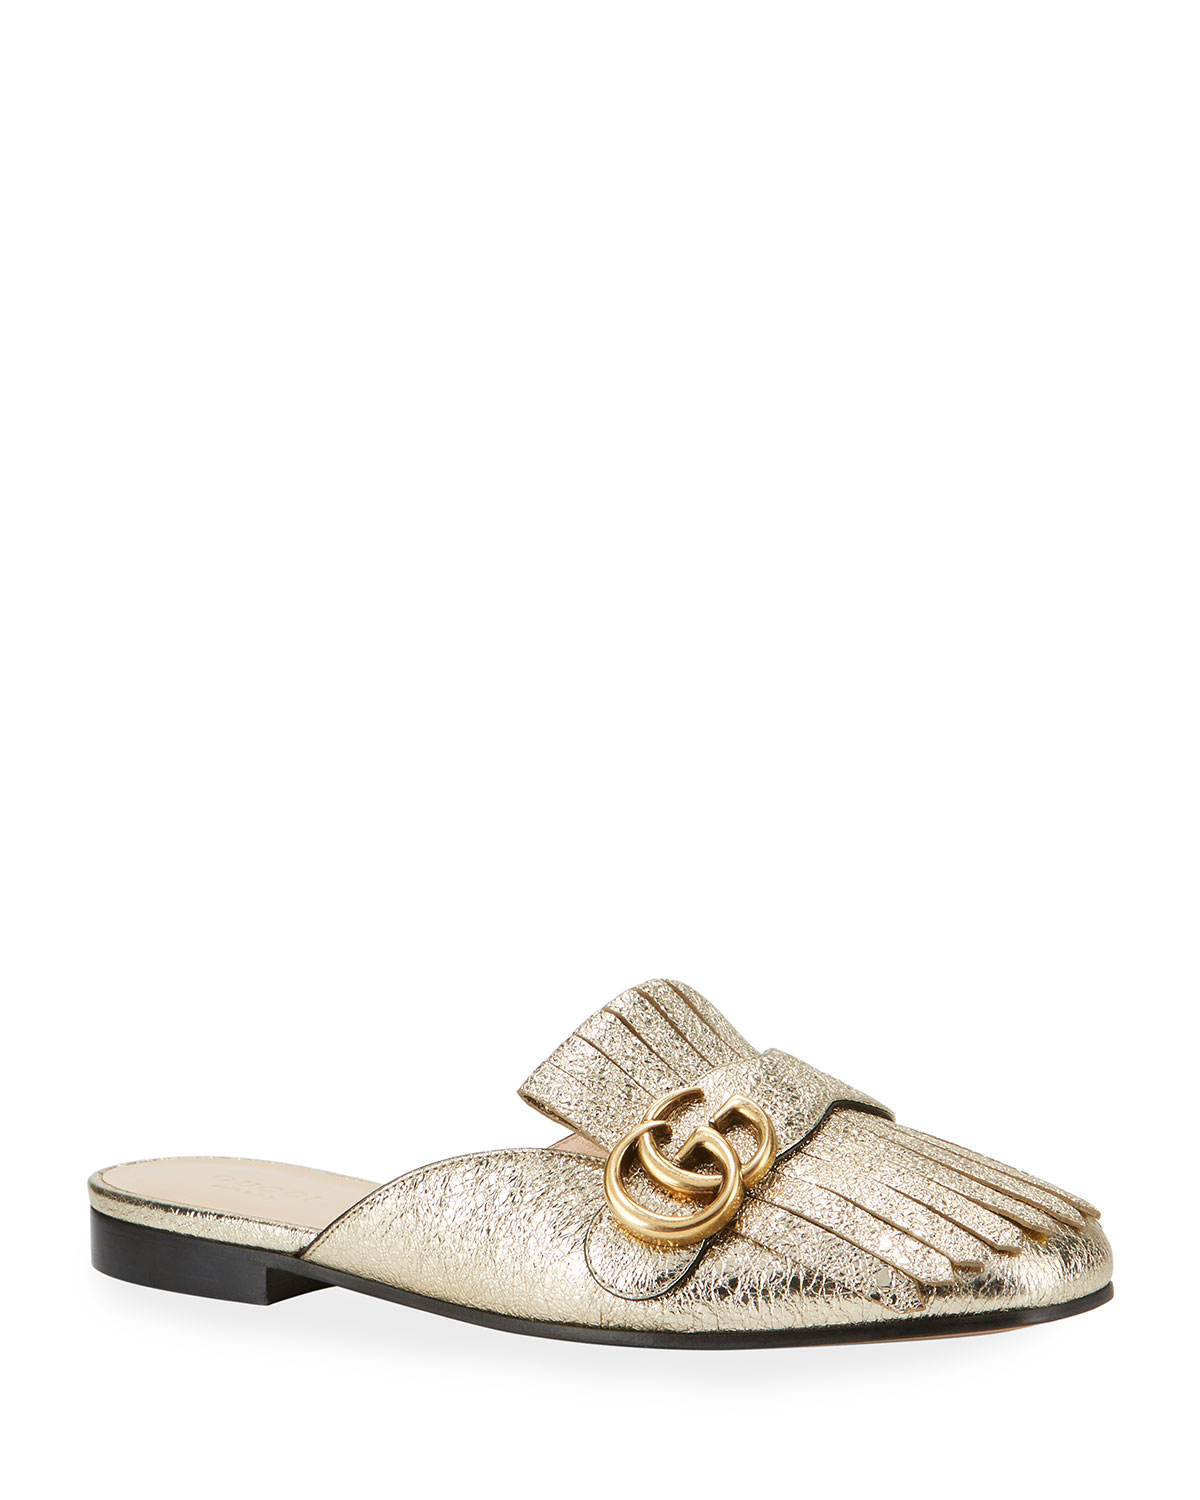 73daeb31869b11 Gucci 10mm Marmont Metallic Mule